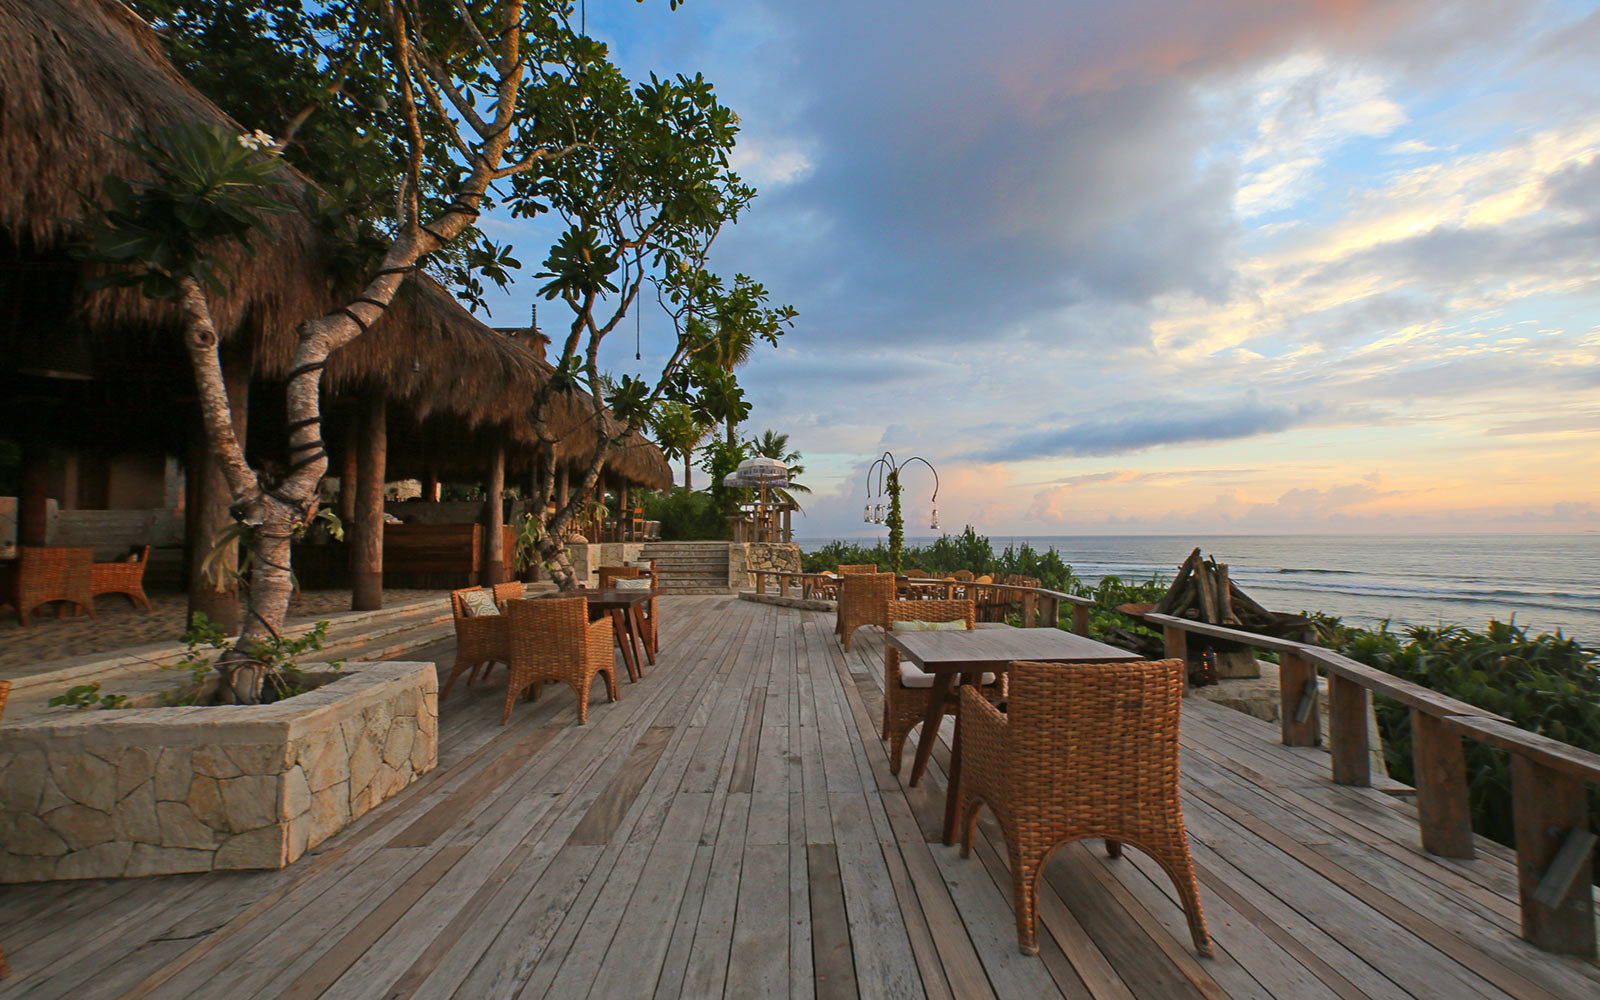 Deck, Sunset, Nihiwatu, Sumba, Indonesia